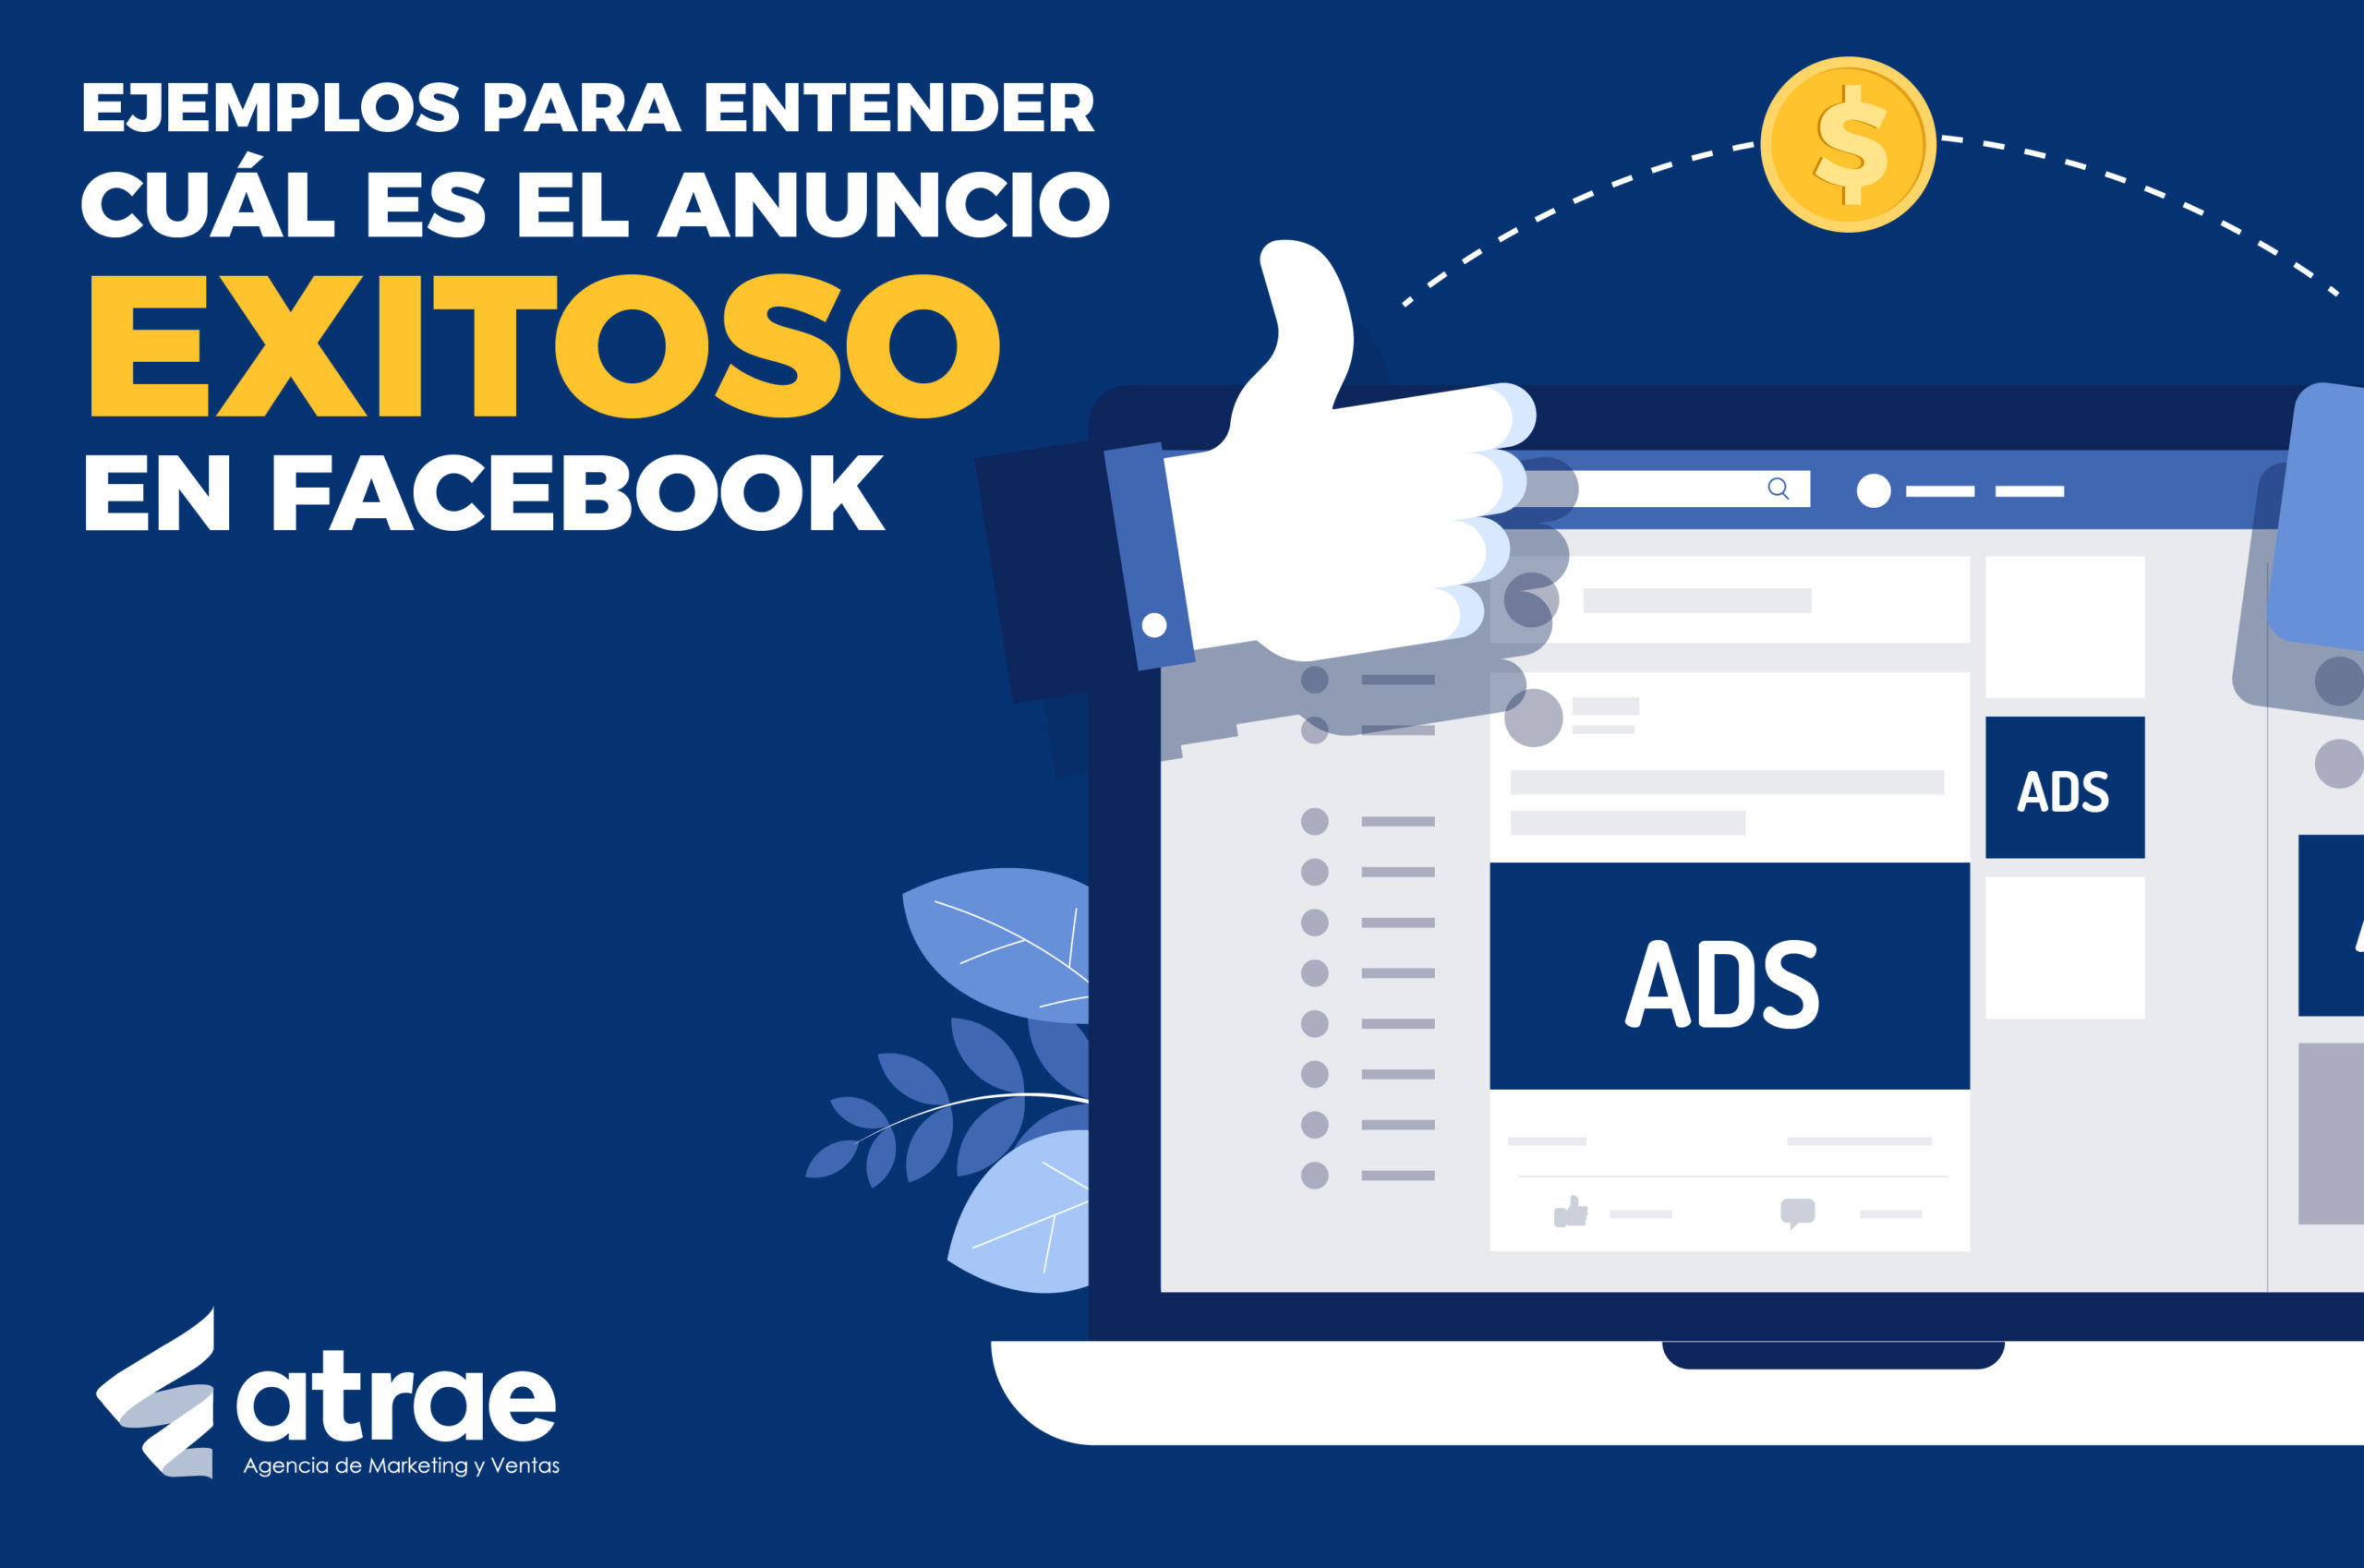 Anuncio exitoso en Facebook ATRAE Agencia especializada en ventas Bogotá Marketing Digital